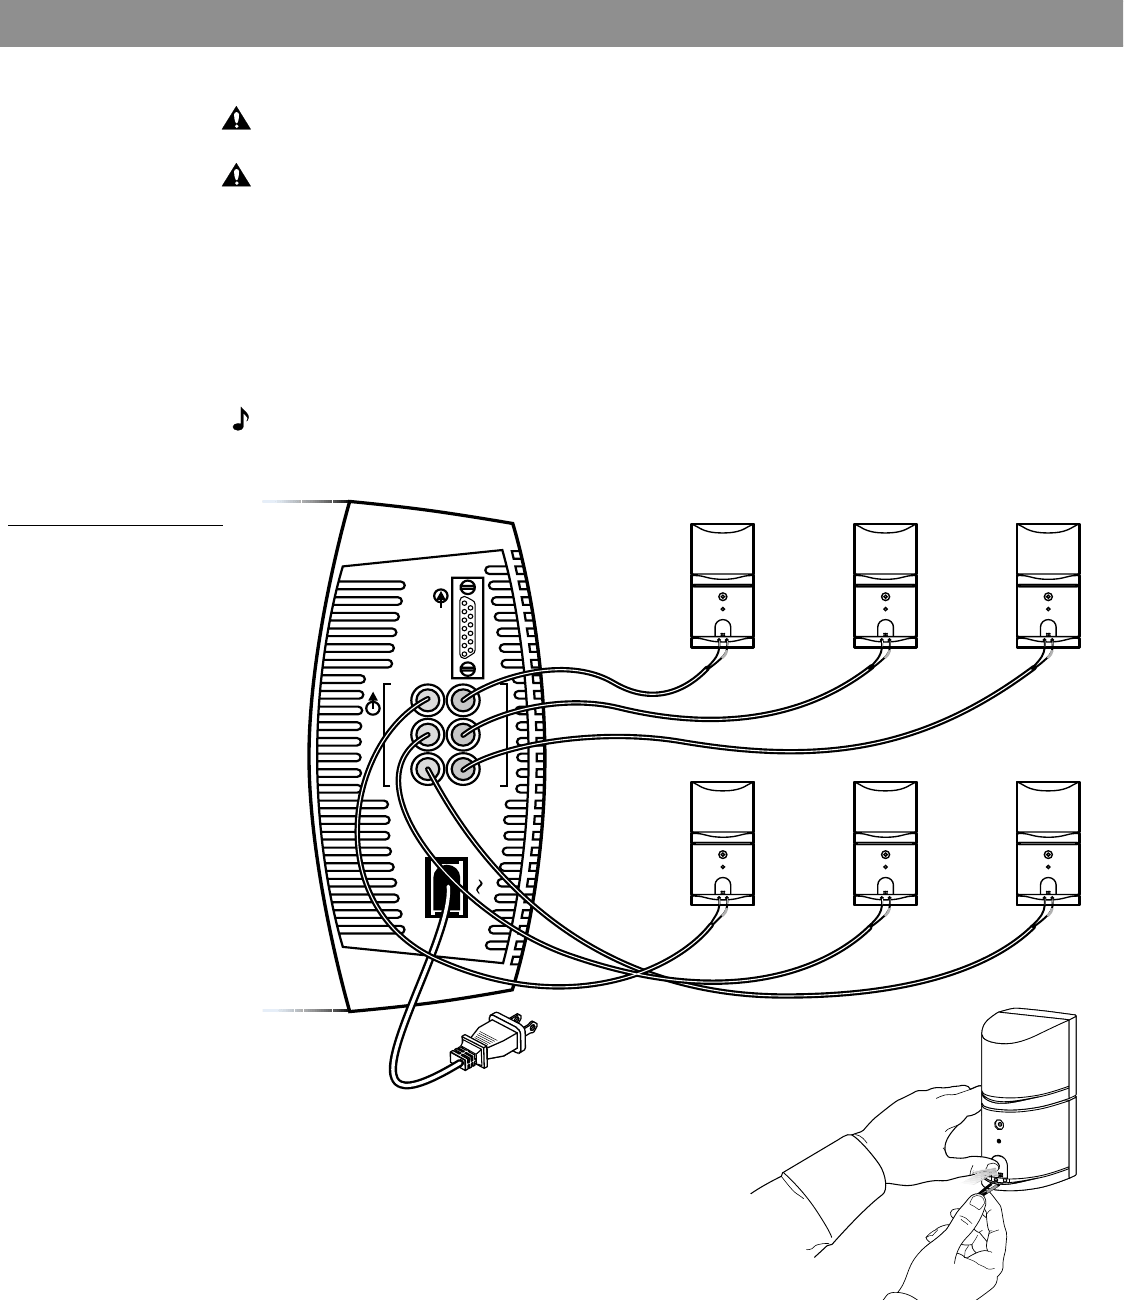 Page 8 of Bose Speaker System 15 User Guide